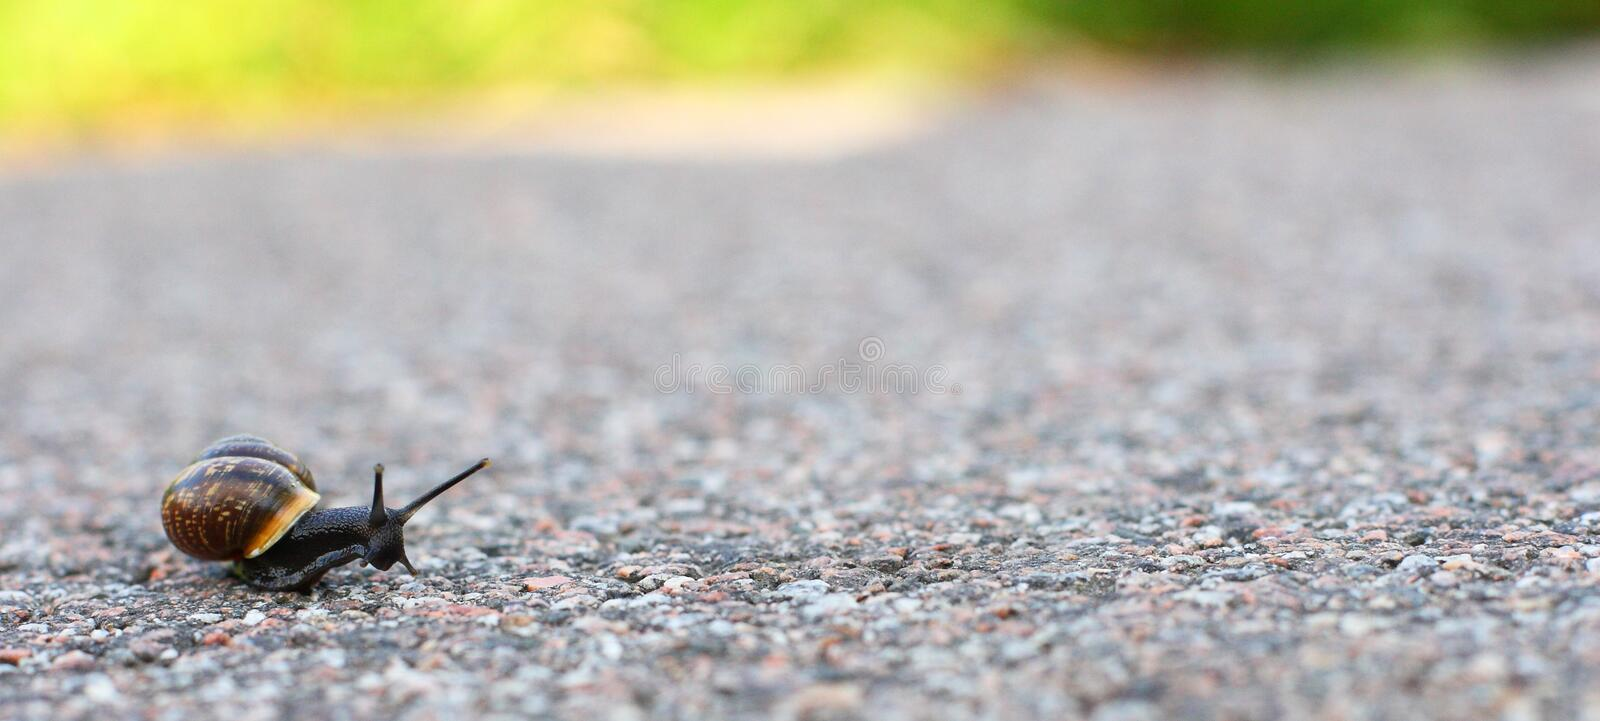 Download Garden snail on the road stock image. Image of recession - 25773097